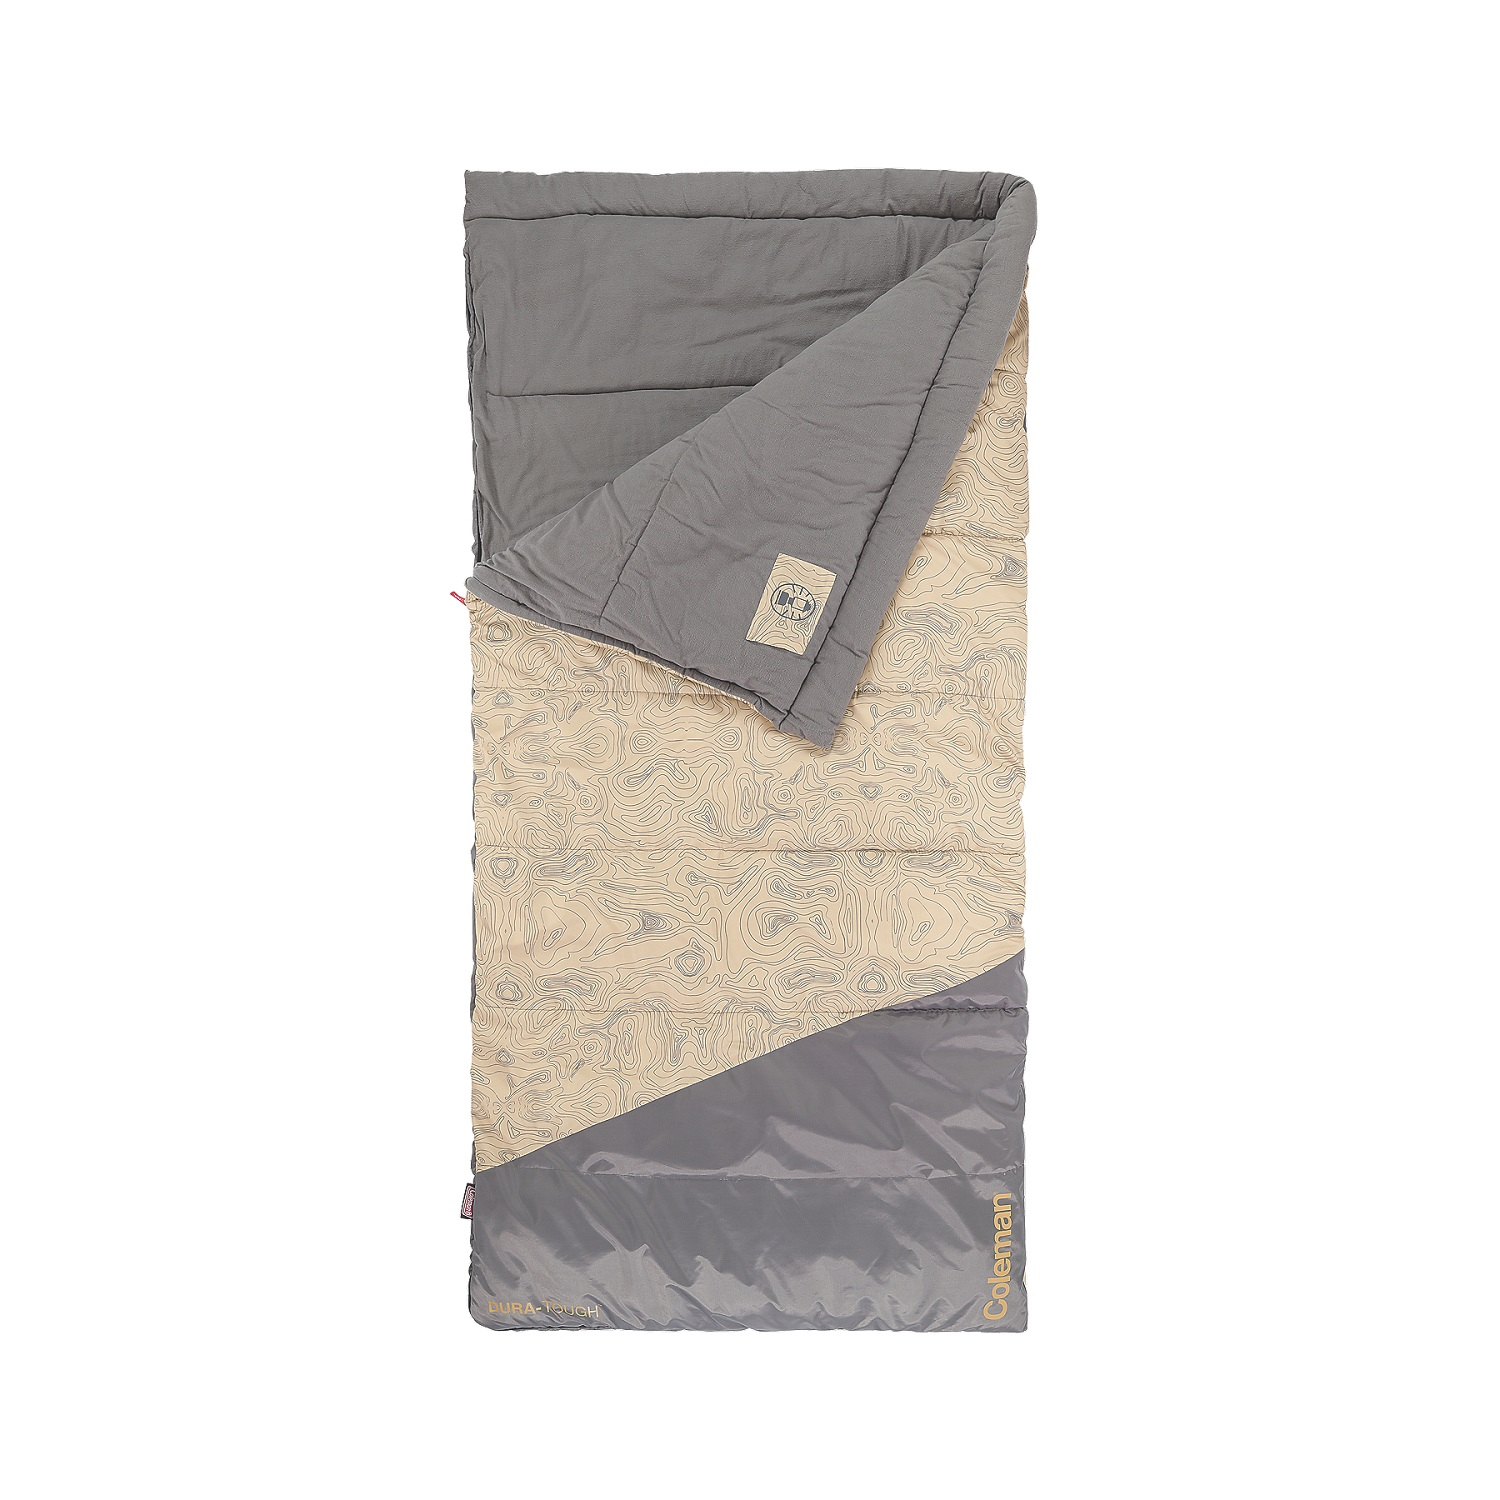 """Coleman Big-N-Tall 30 Sleeping Bag, Tan Fits up to 6'7"""" by COLEMAN"""